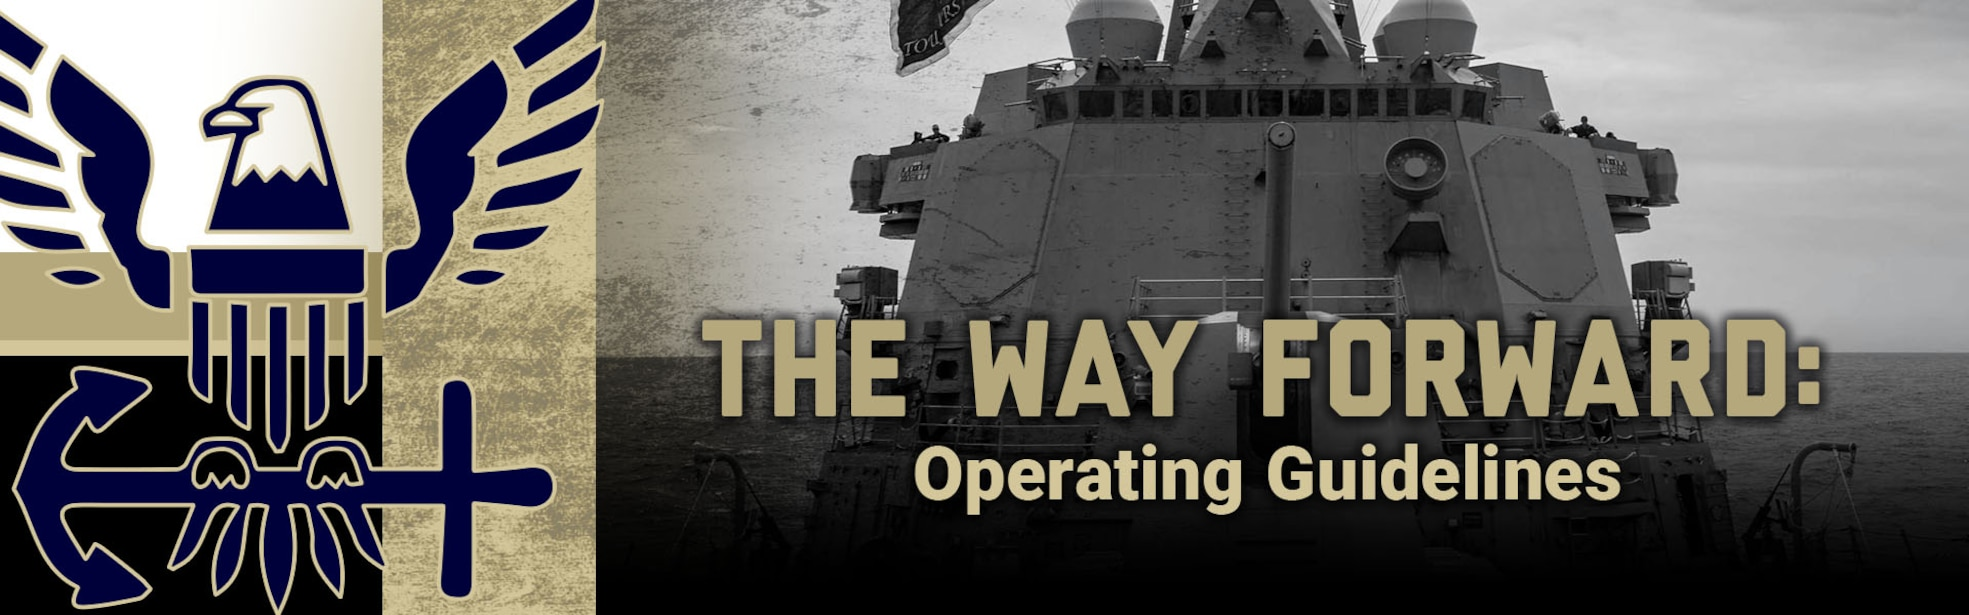 The Way Forward: Operating Guidelines banner showing black white ship with logo golden accent